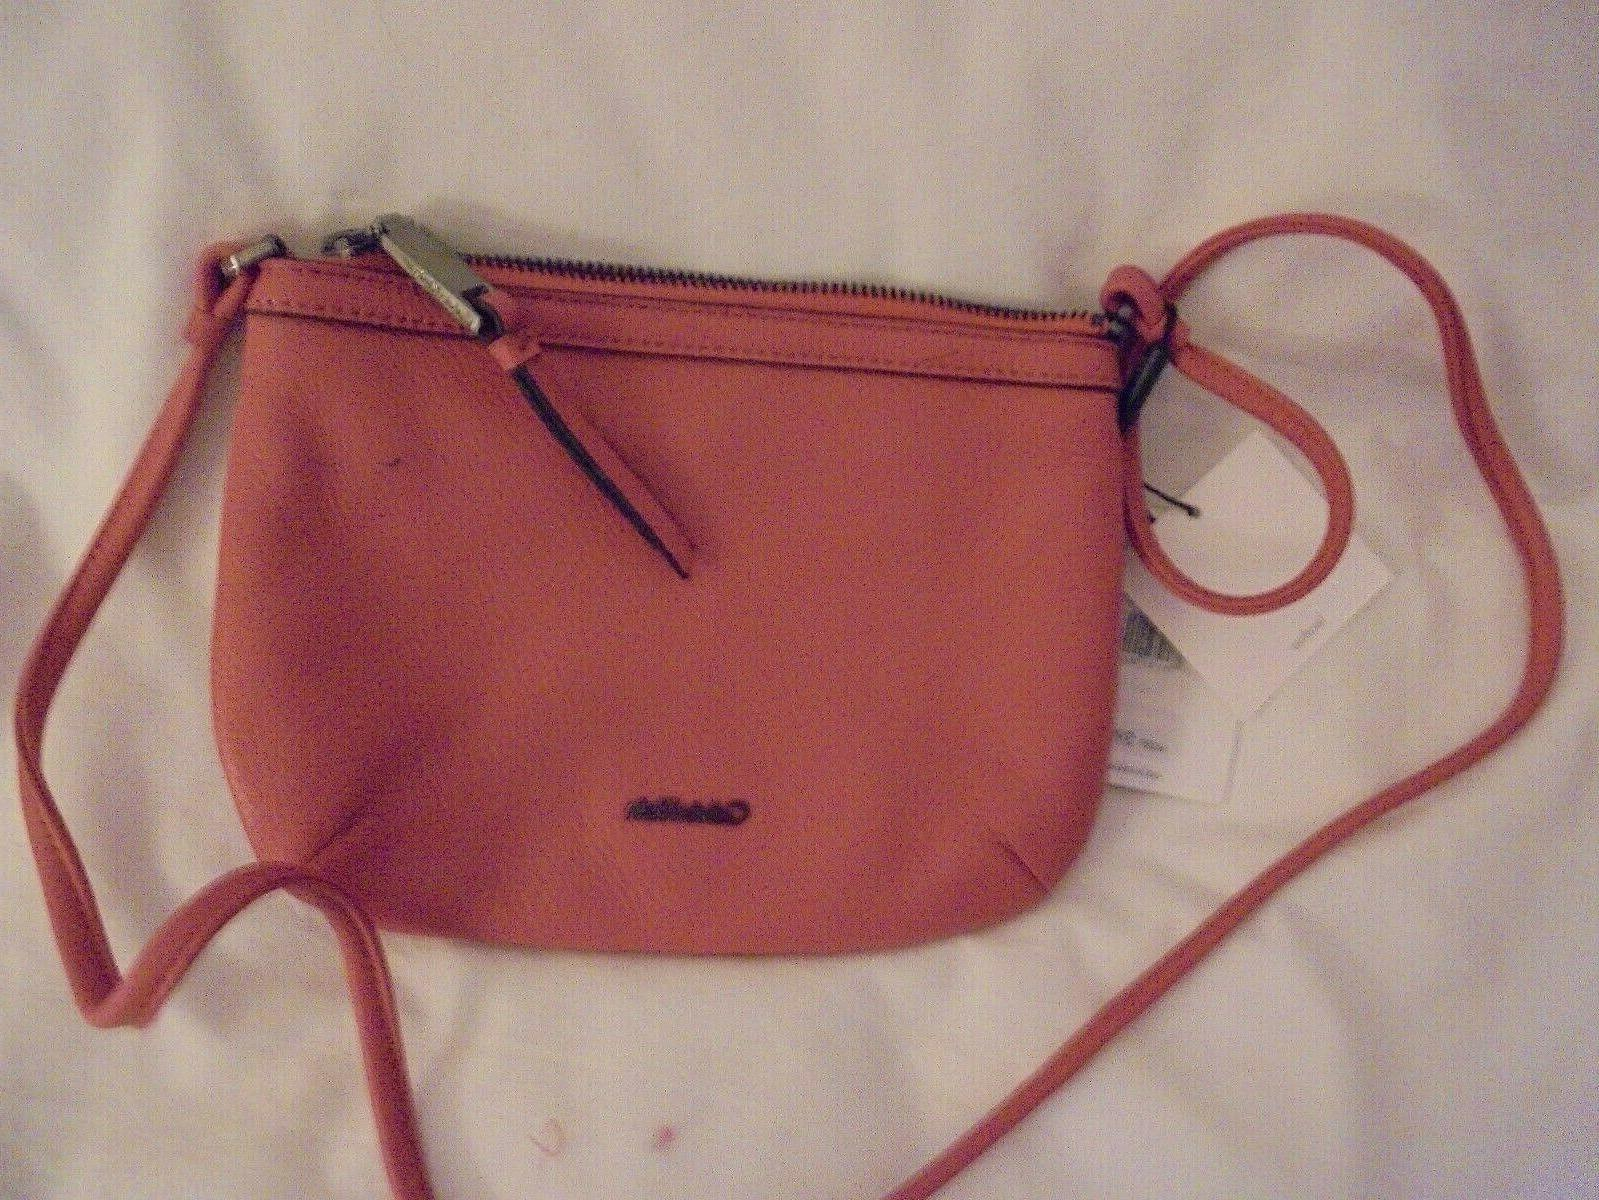 Calvin Klein Pebbled Leather Persimmom color